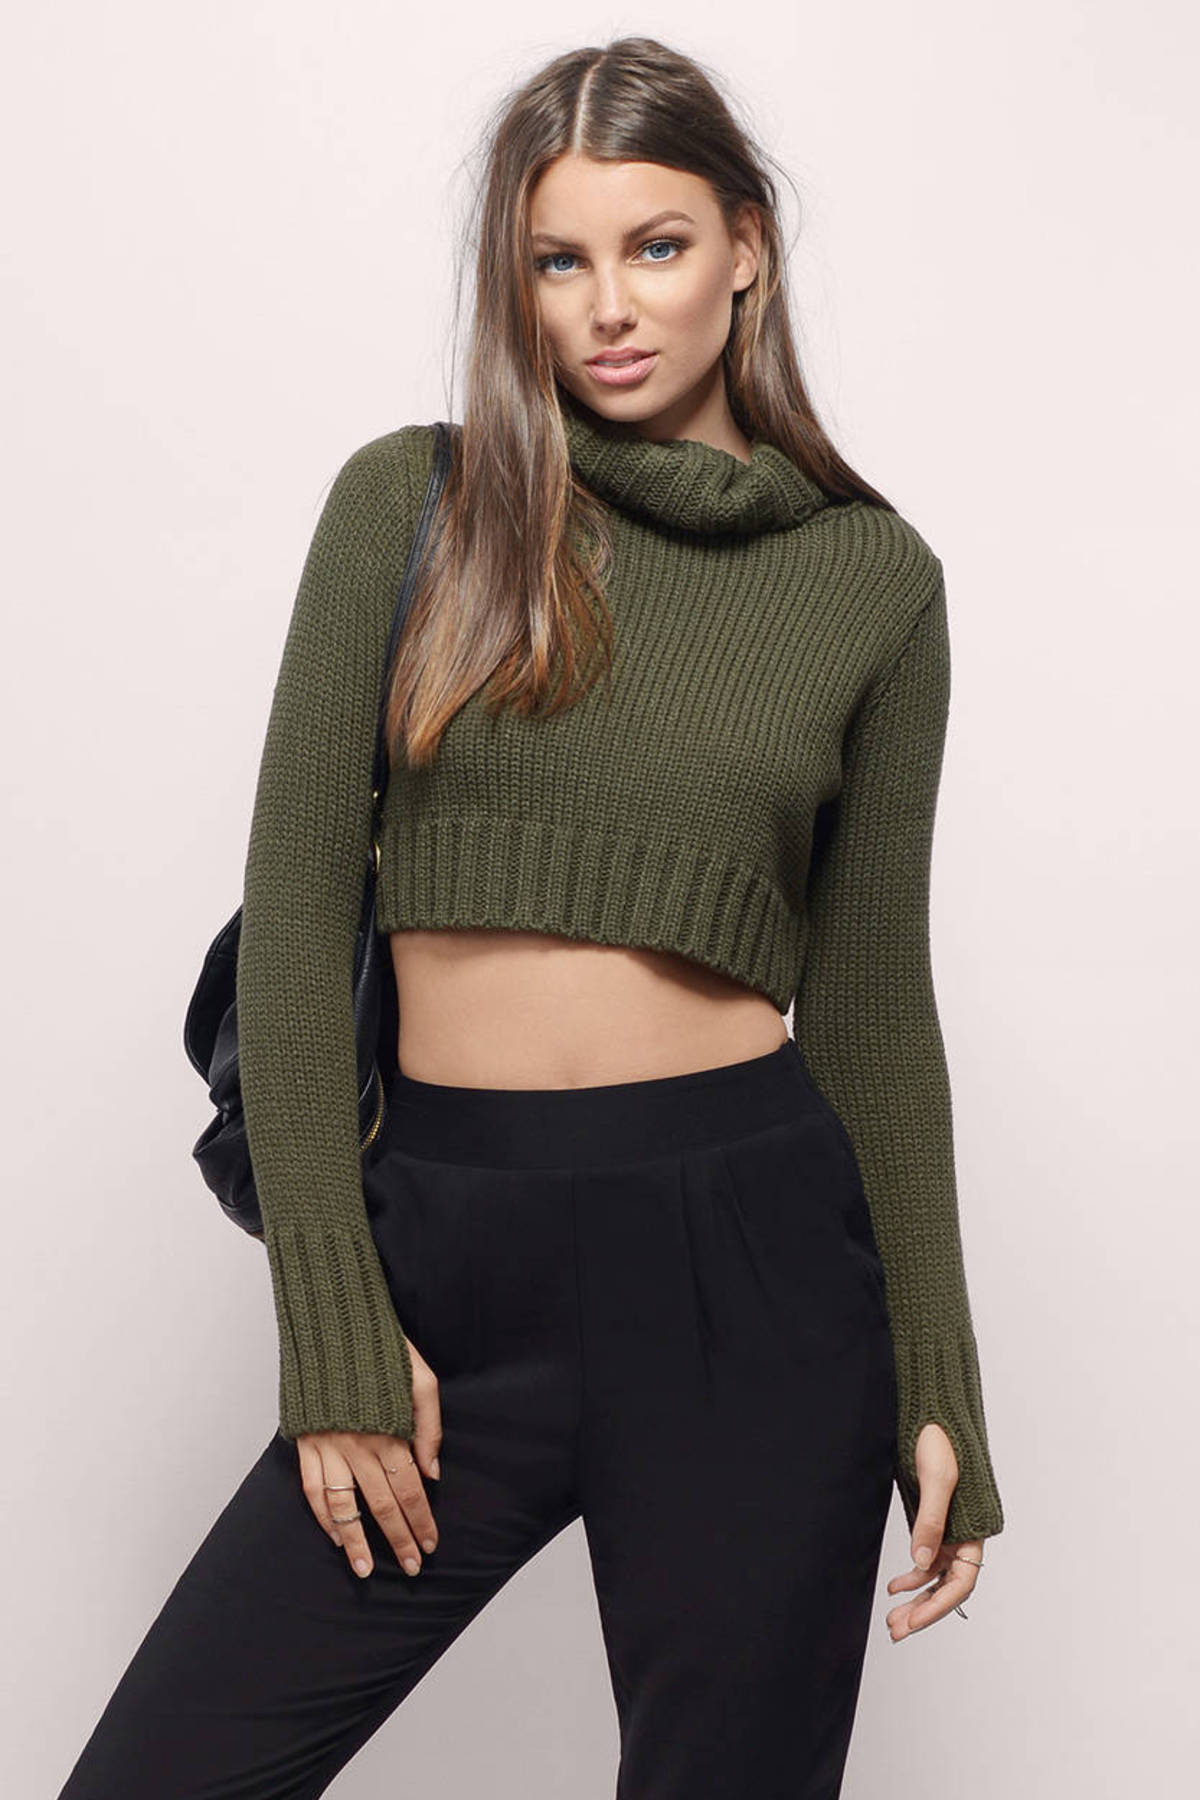 Cheap Olive Sweater - Turtleneck Sweater - $14.00